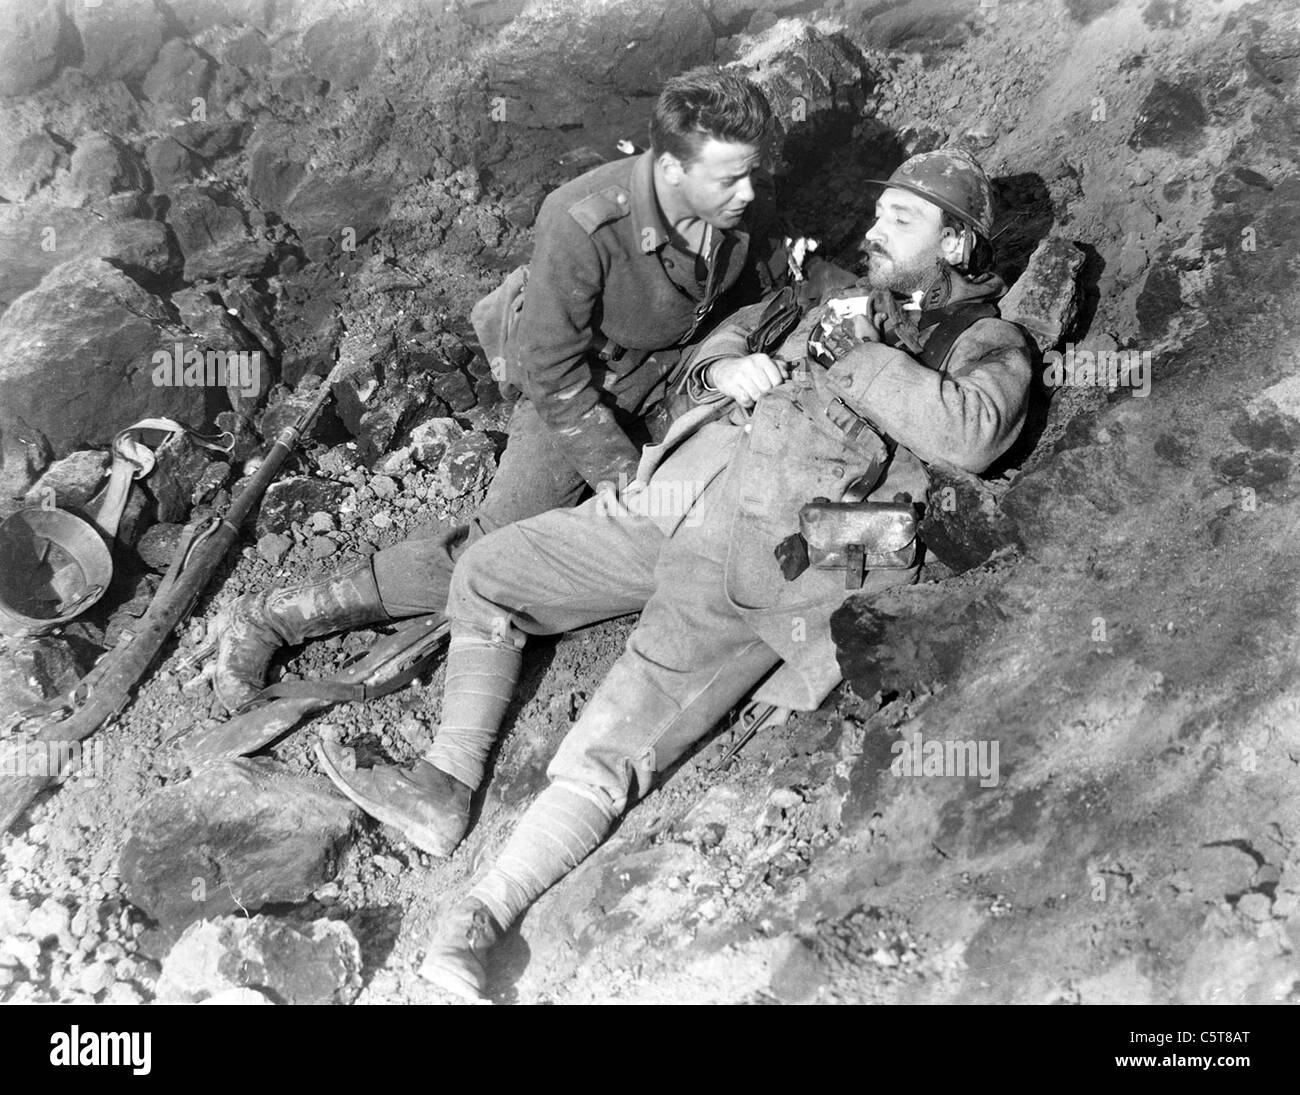 ALL QUIET ON THE WESTERN FRONT (1930) PAUL MONASH (DIR) 003 MOVIESTORE COLLECTION LTD - Stock Image